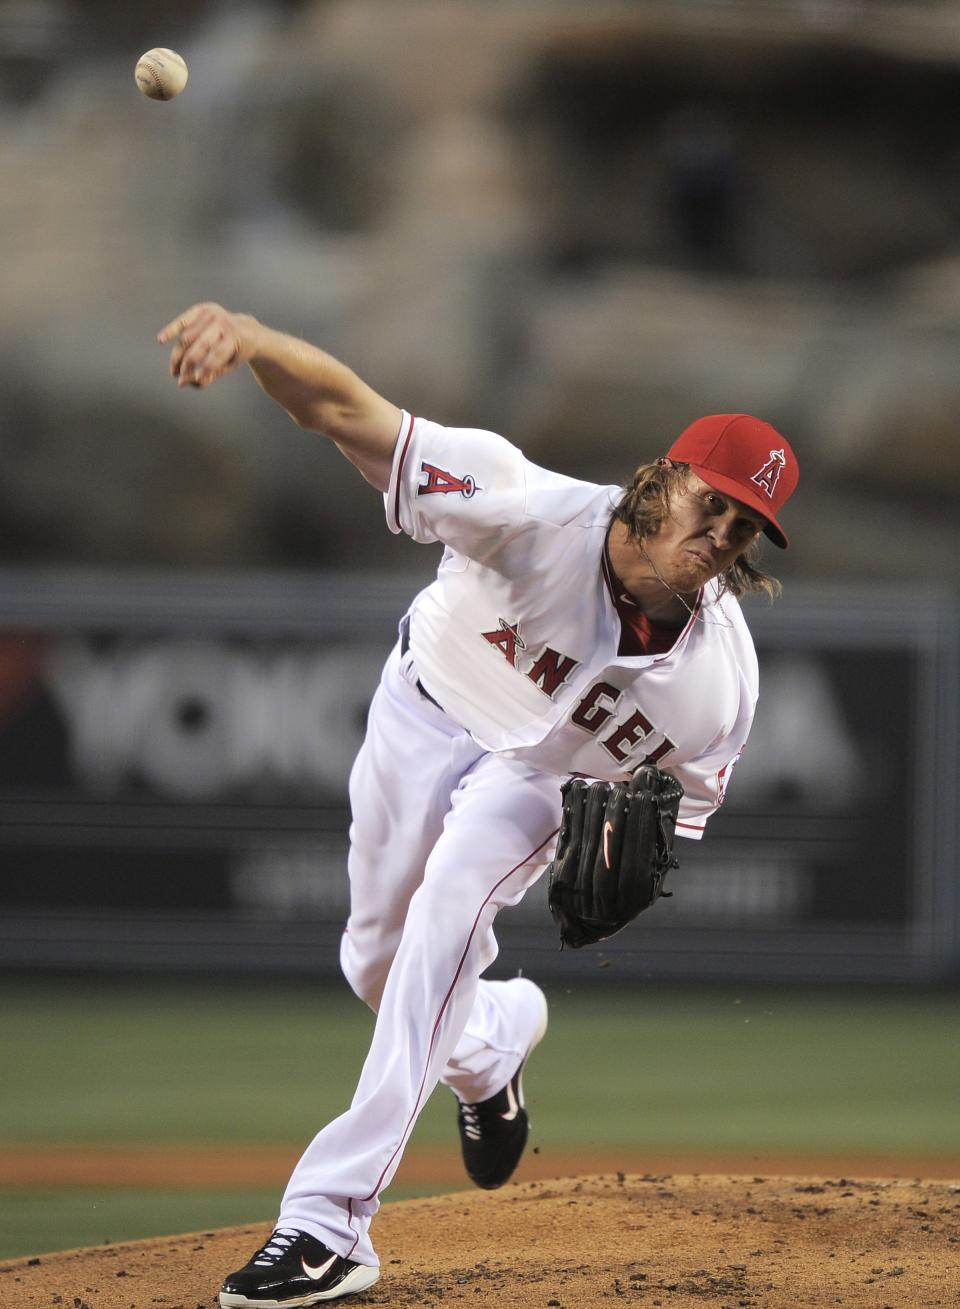 Los Angeles Angels starting pitcher Jered Weaver throws to the plate during the second inning of the Angels' baseball game against the Minnesota Twins, Wednesday, May 2, 2012, in Anaheim, Calif. (AP Photo/Mark J. Terrill)